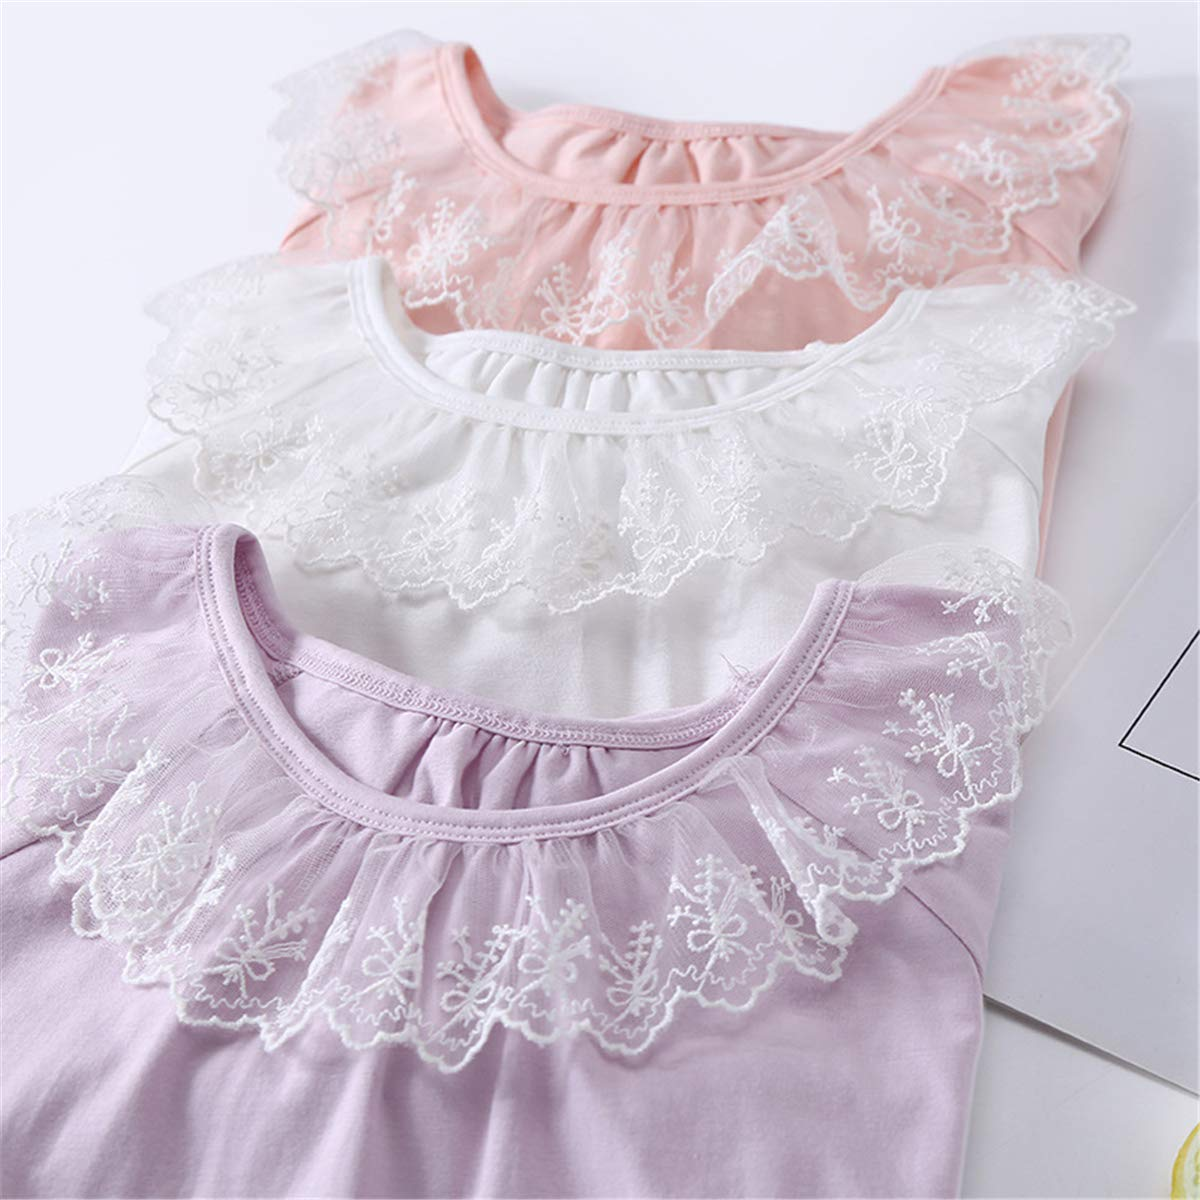 Ameyda Girls Nightgown with Lace 3-13 Years